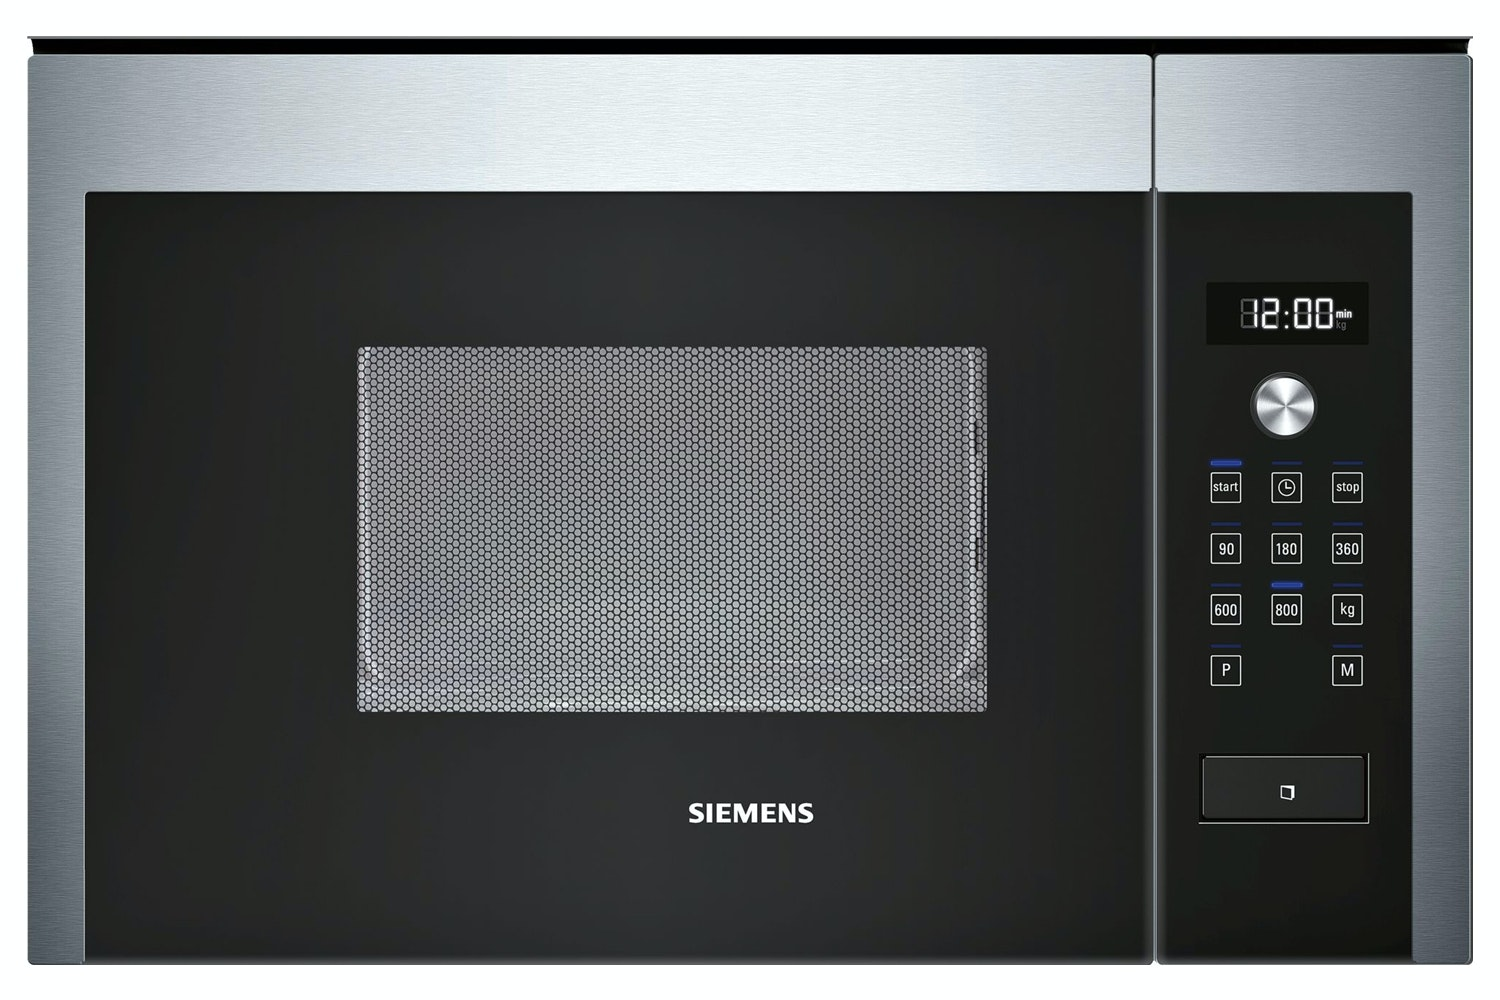 Siemens iQ500 20L 800W Built In Microwave Oven | Stainless Steel